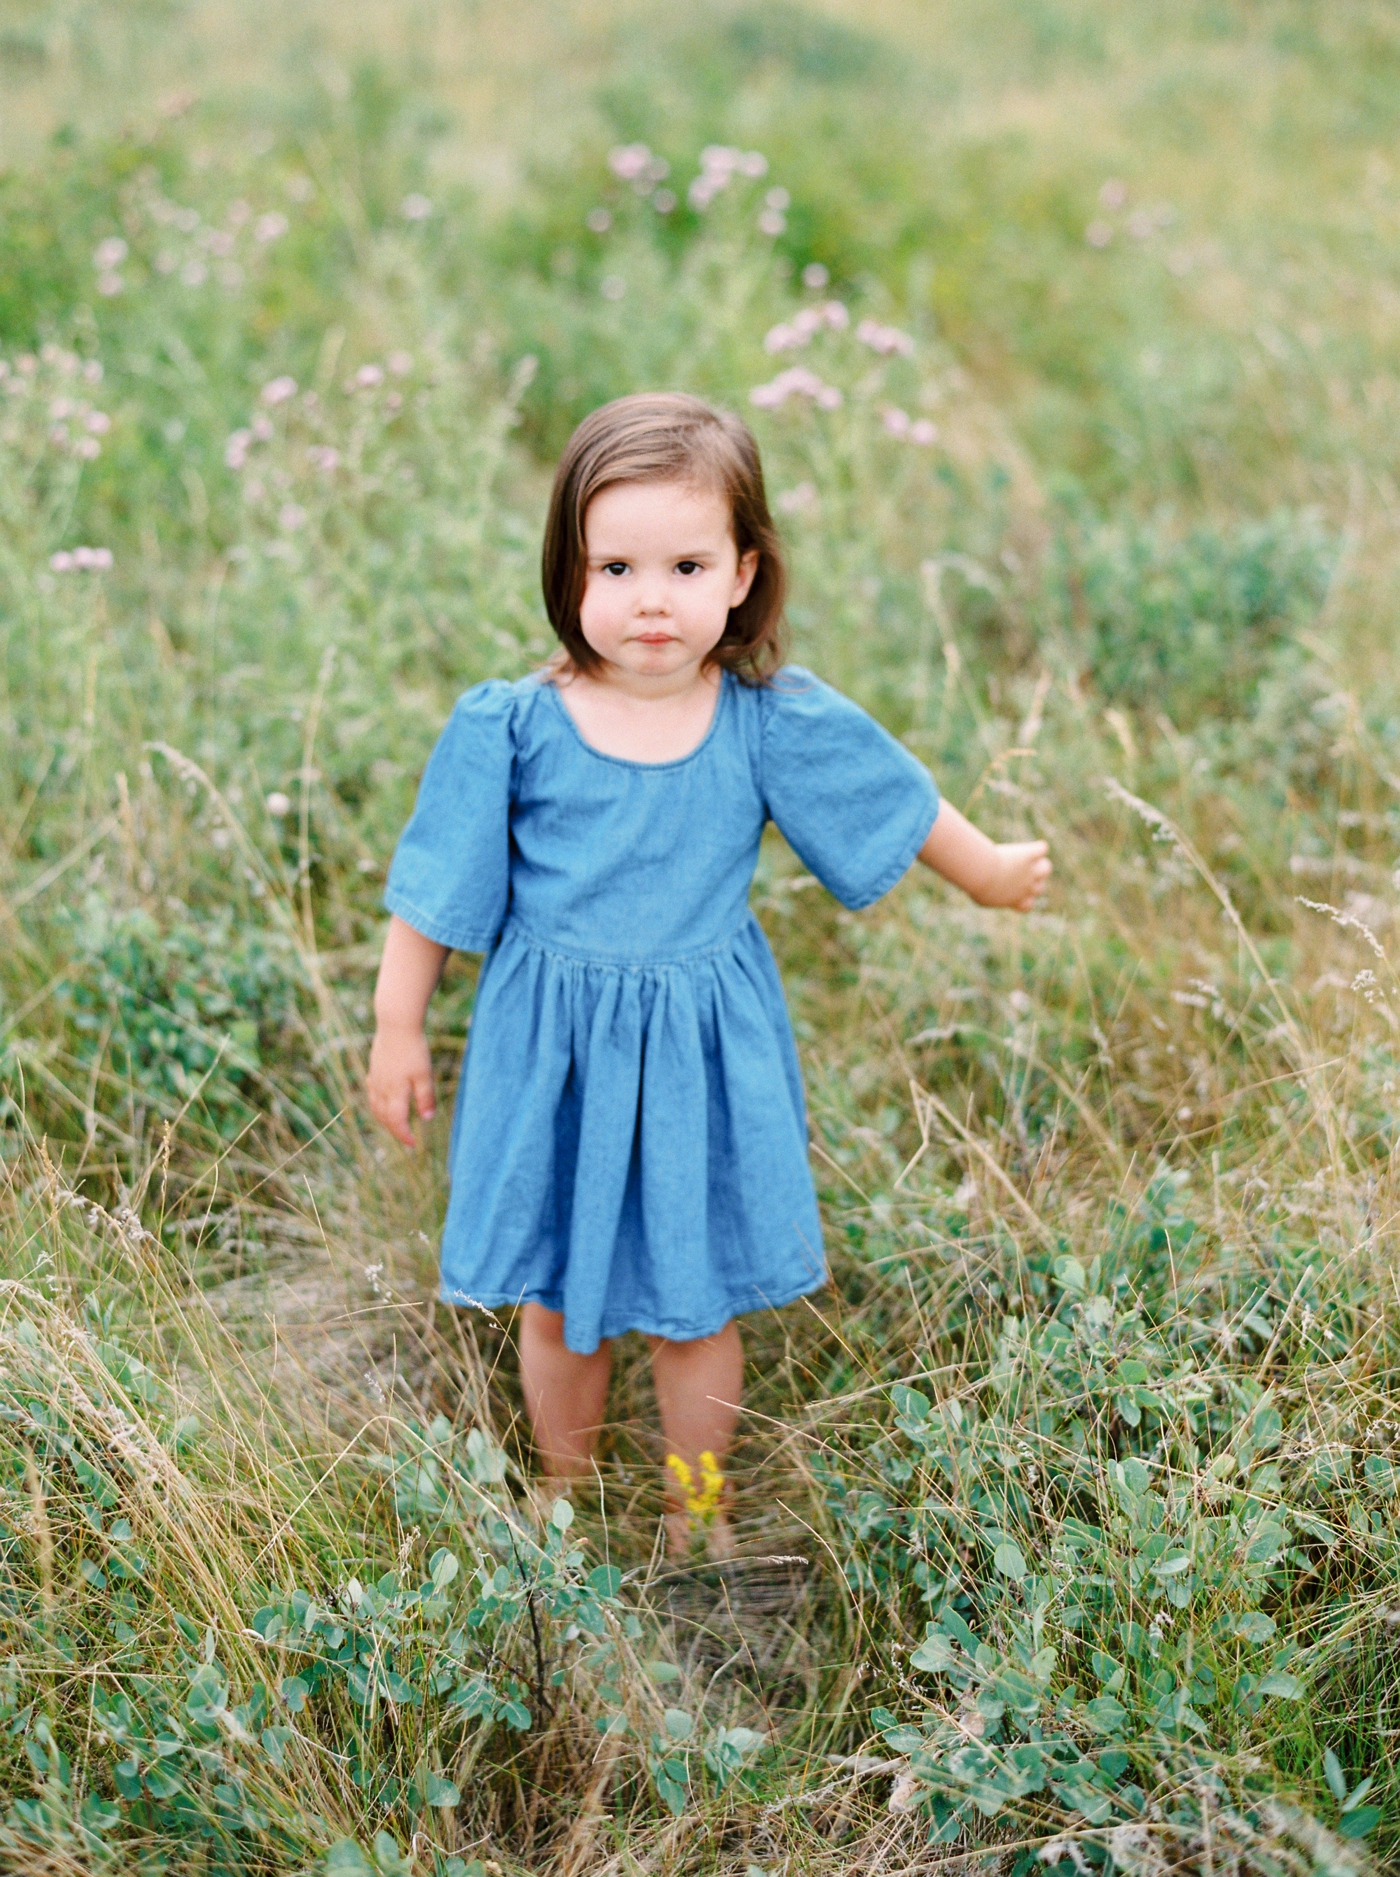 calgary family photographers | mini session family photos summer | family photos outfit inspiration what to wear | justine milton fine art film photography